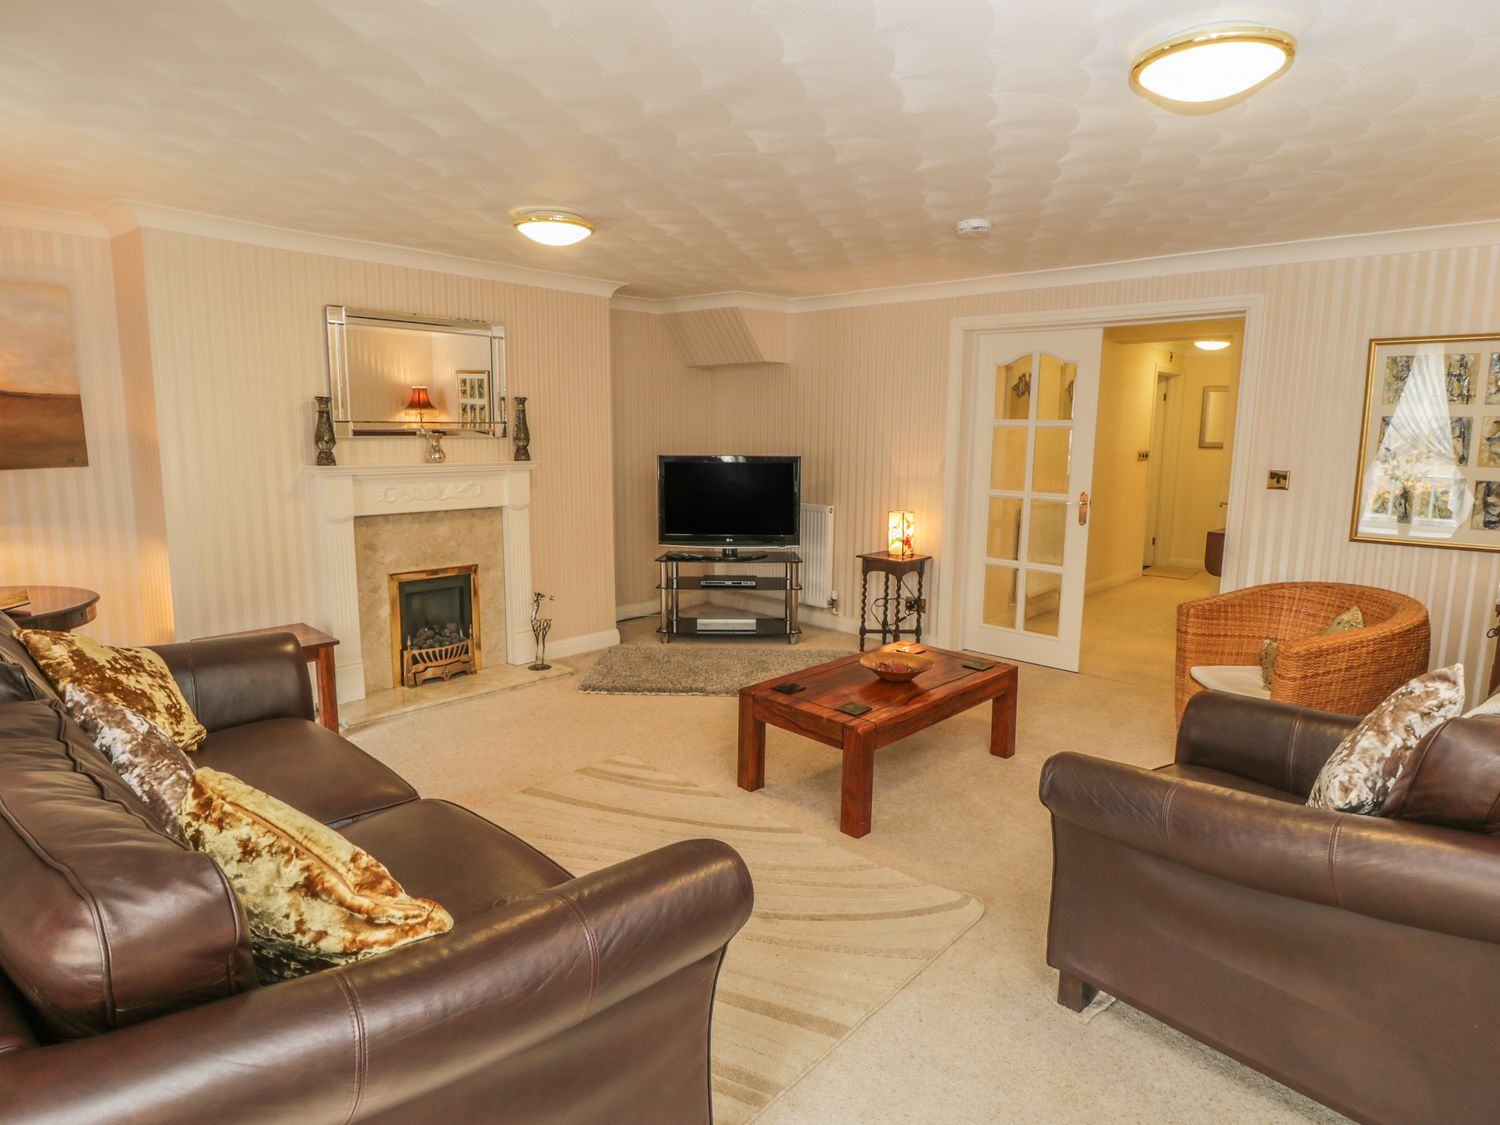 The Garden Apartment in Filey - sleeps 4 people